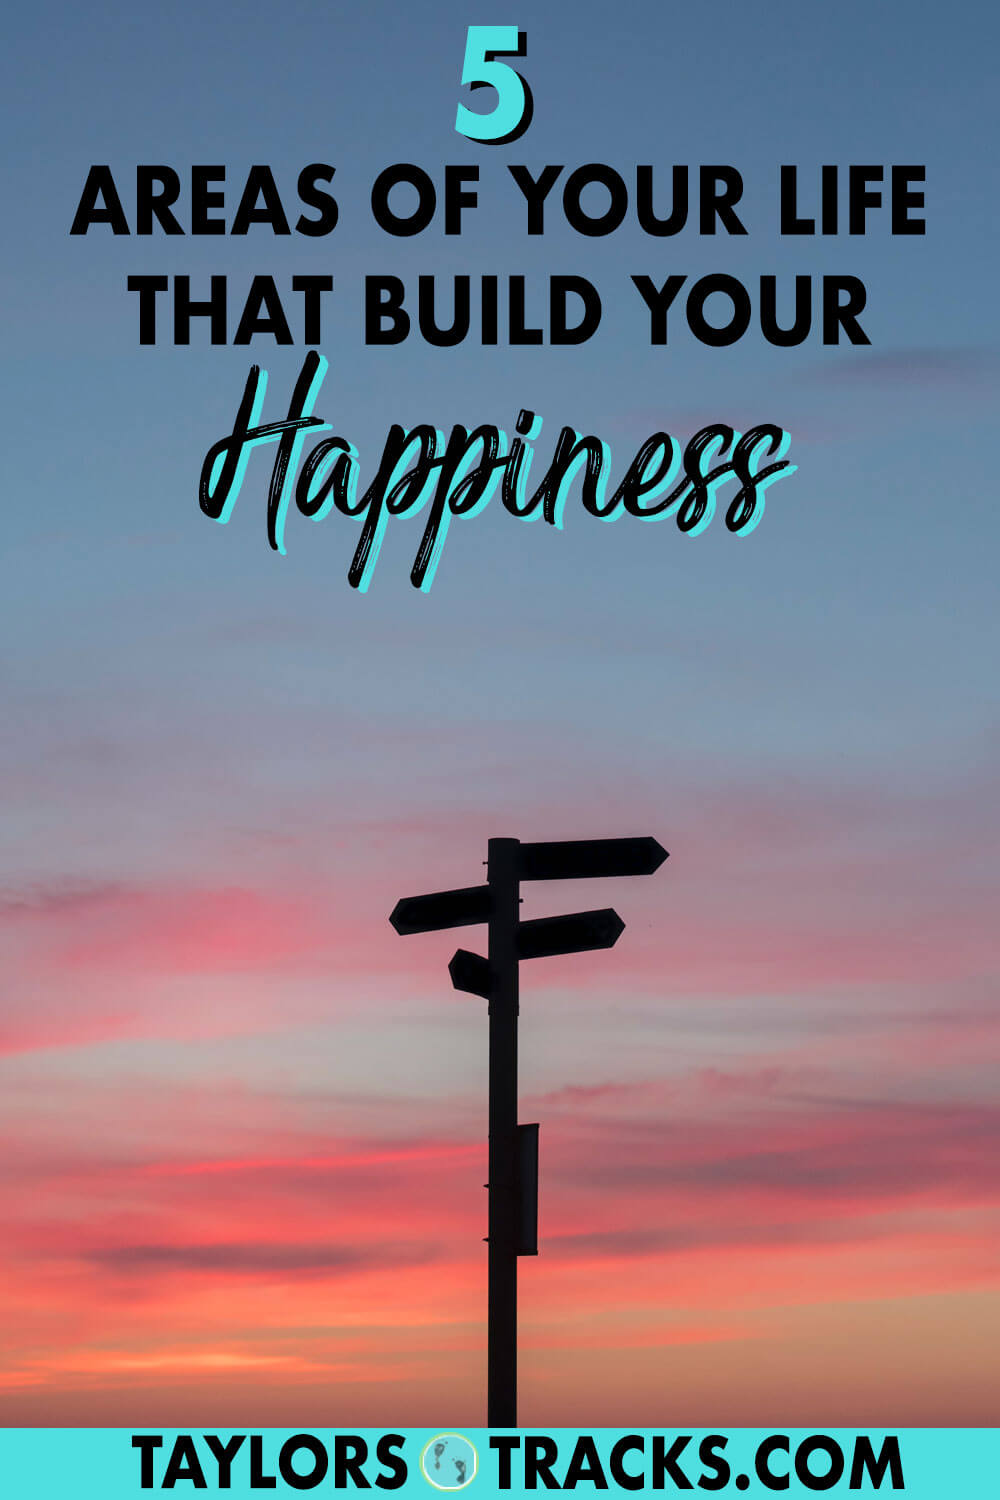 Build your happiness and you'll be happy forever. Invest the time in learning how to be happy now and you'll reap the benefits for a long time with these helpful and simple happiness tips. Click to become a happier person now!